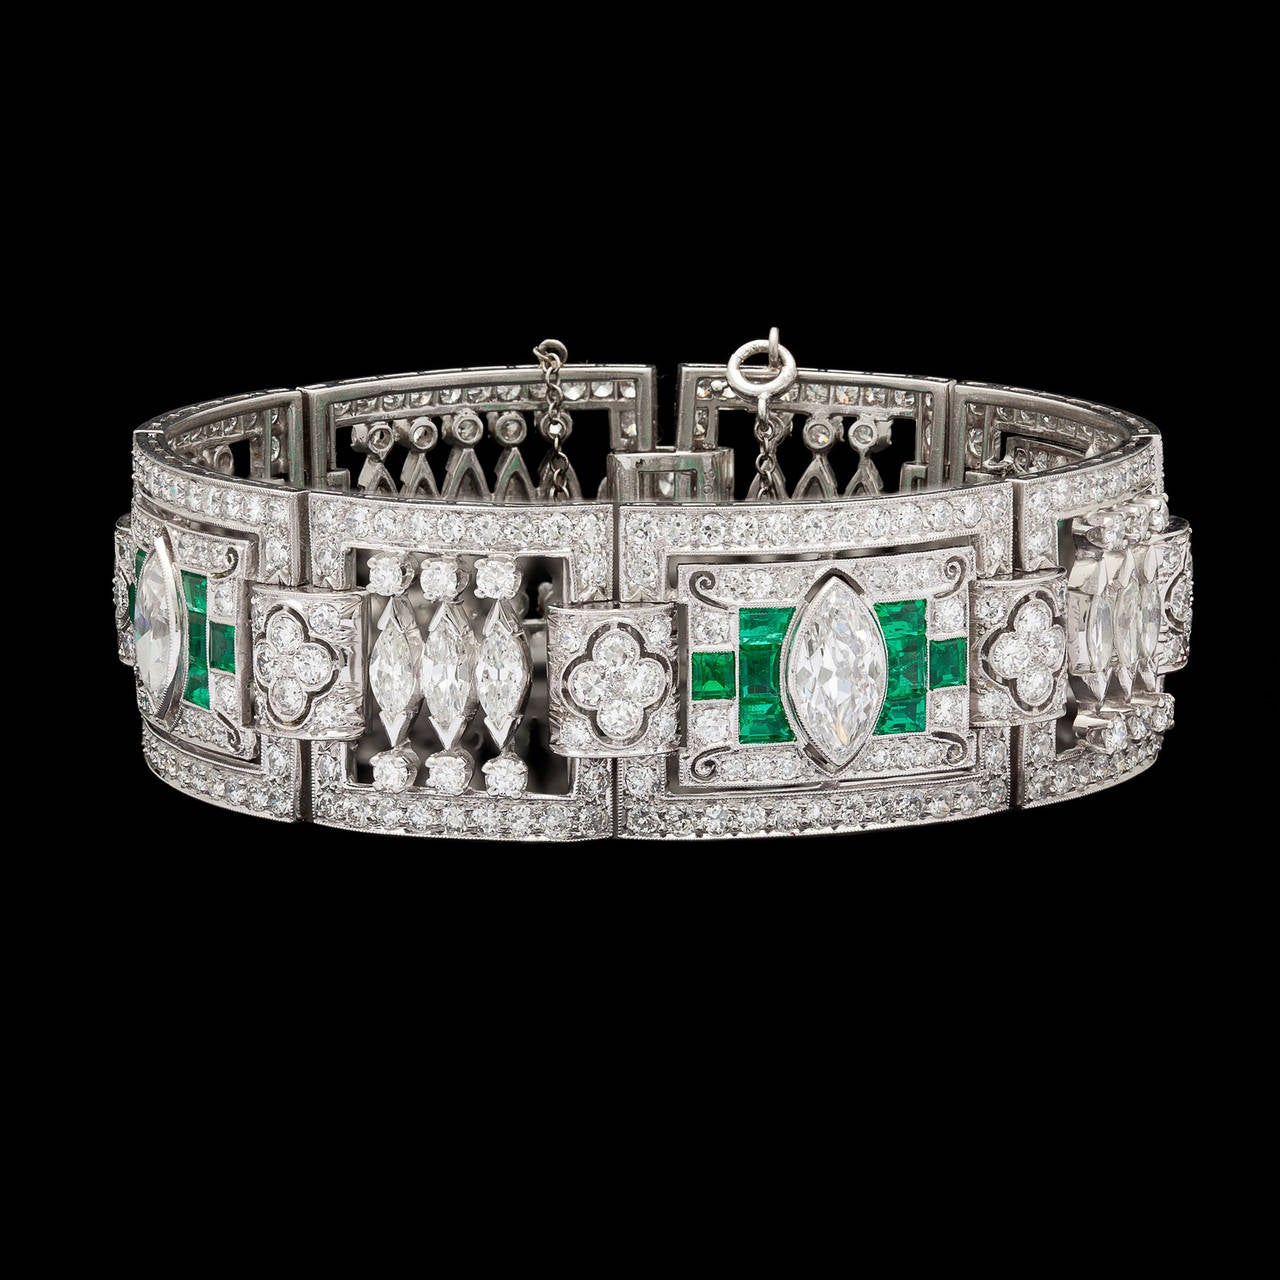 Stunning Art Deco Platinum Link Bracelet Adorned with Marquise and Round Cut Diamonds and 24 Vibrant Emeralds. The three largest marquise cut diamonds total approximately 3.35cts and average G color and SI clarity. The remaining diamonds total